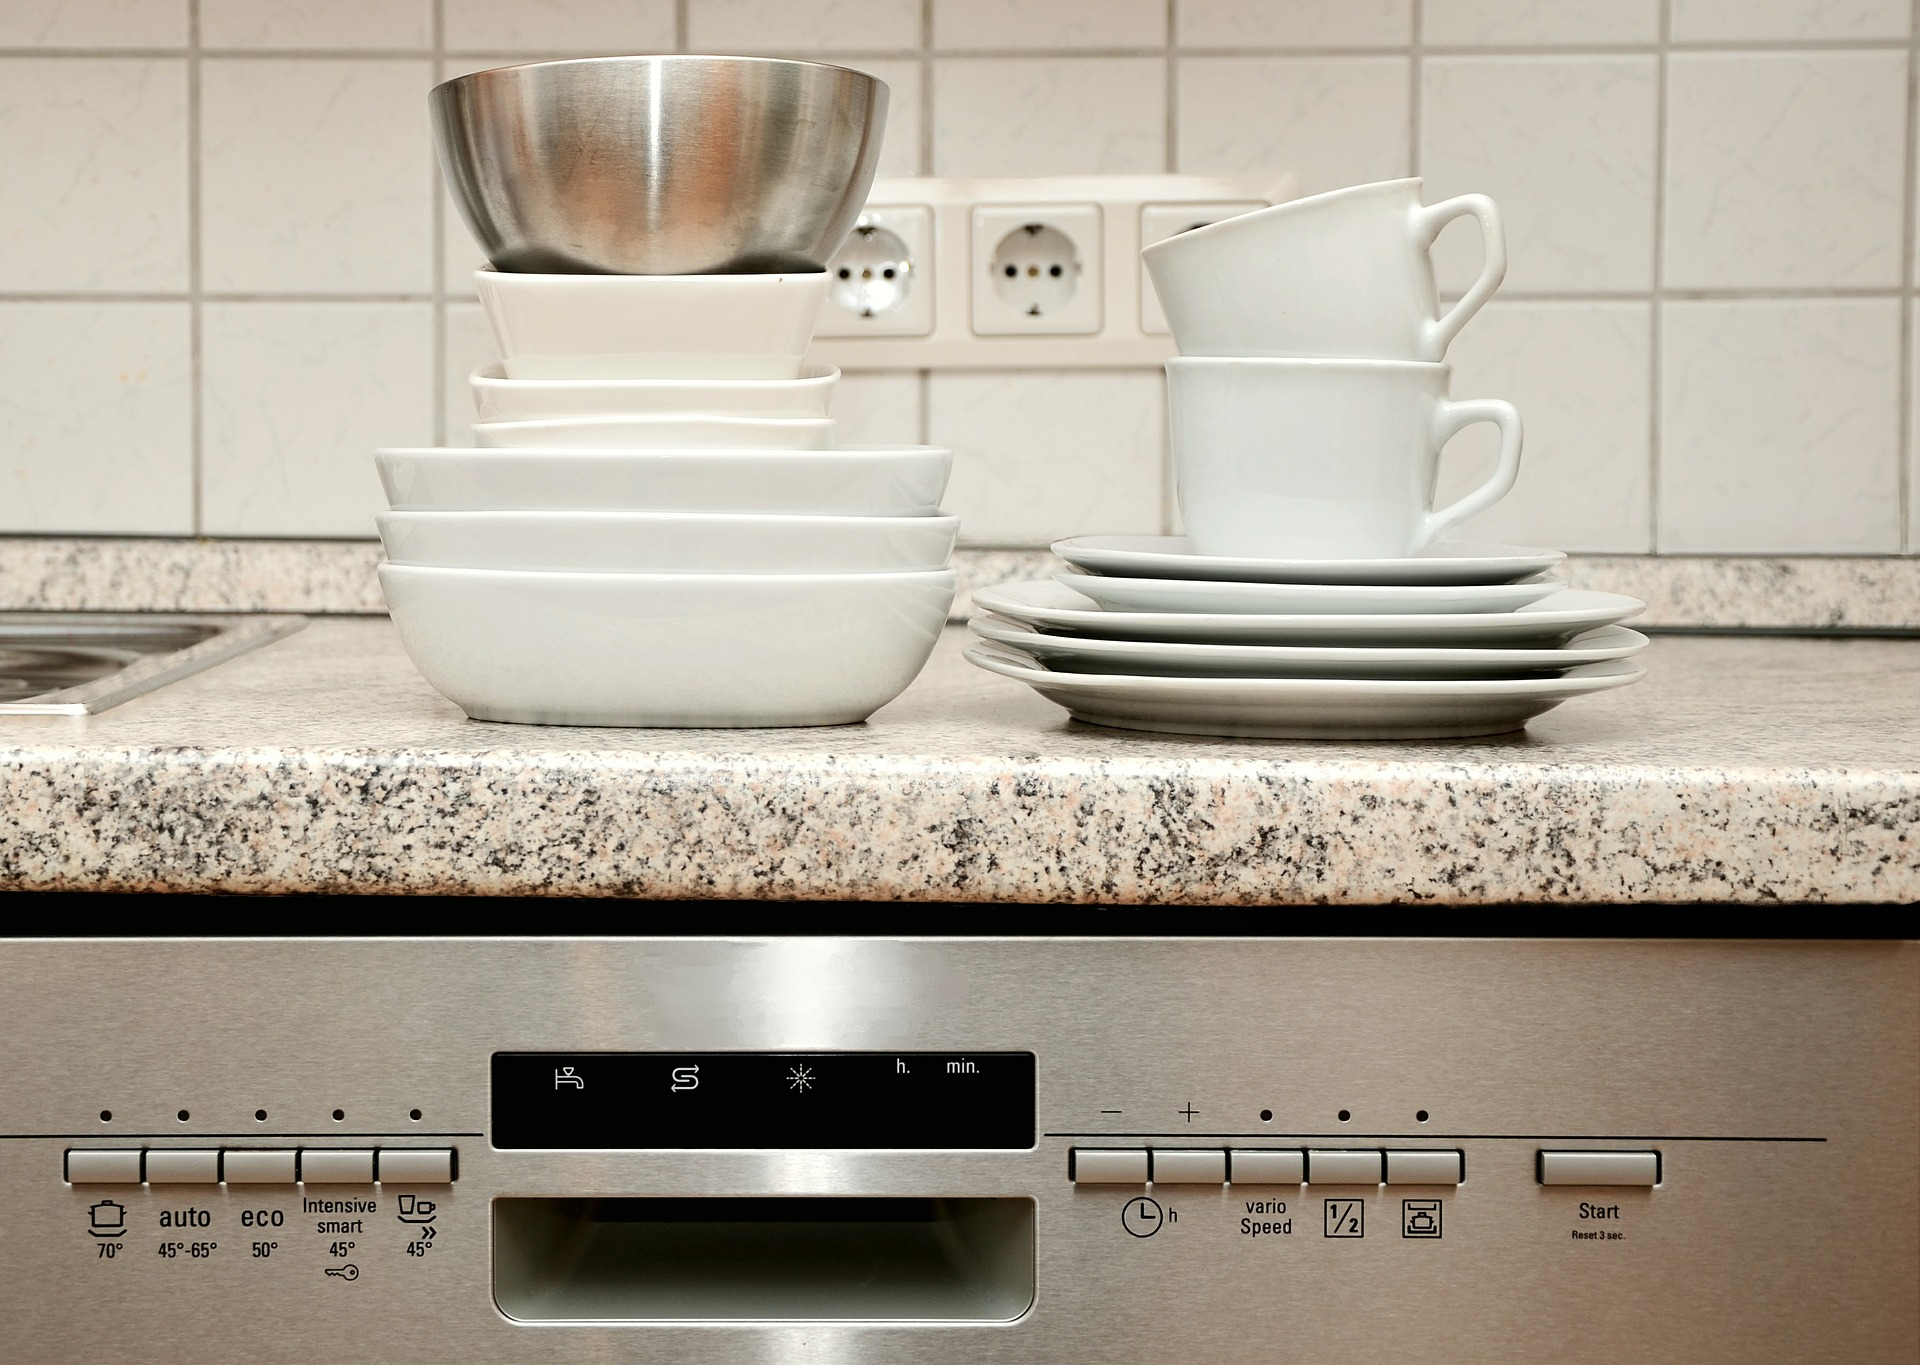 How to keep your kitchen sink and dishwasher, fuss-free!